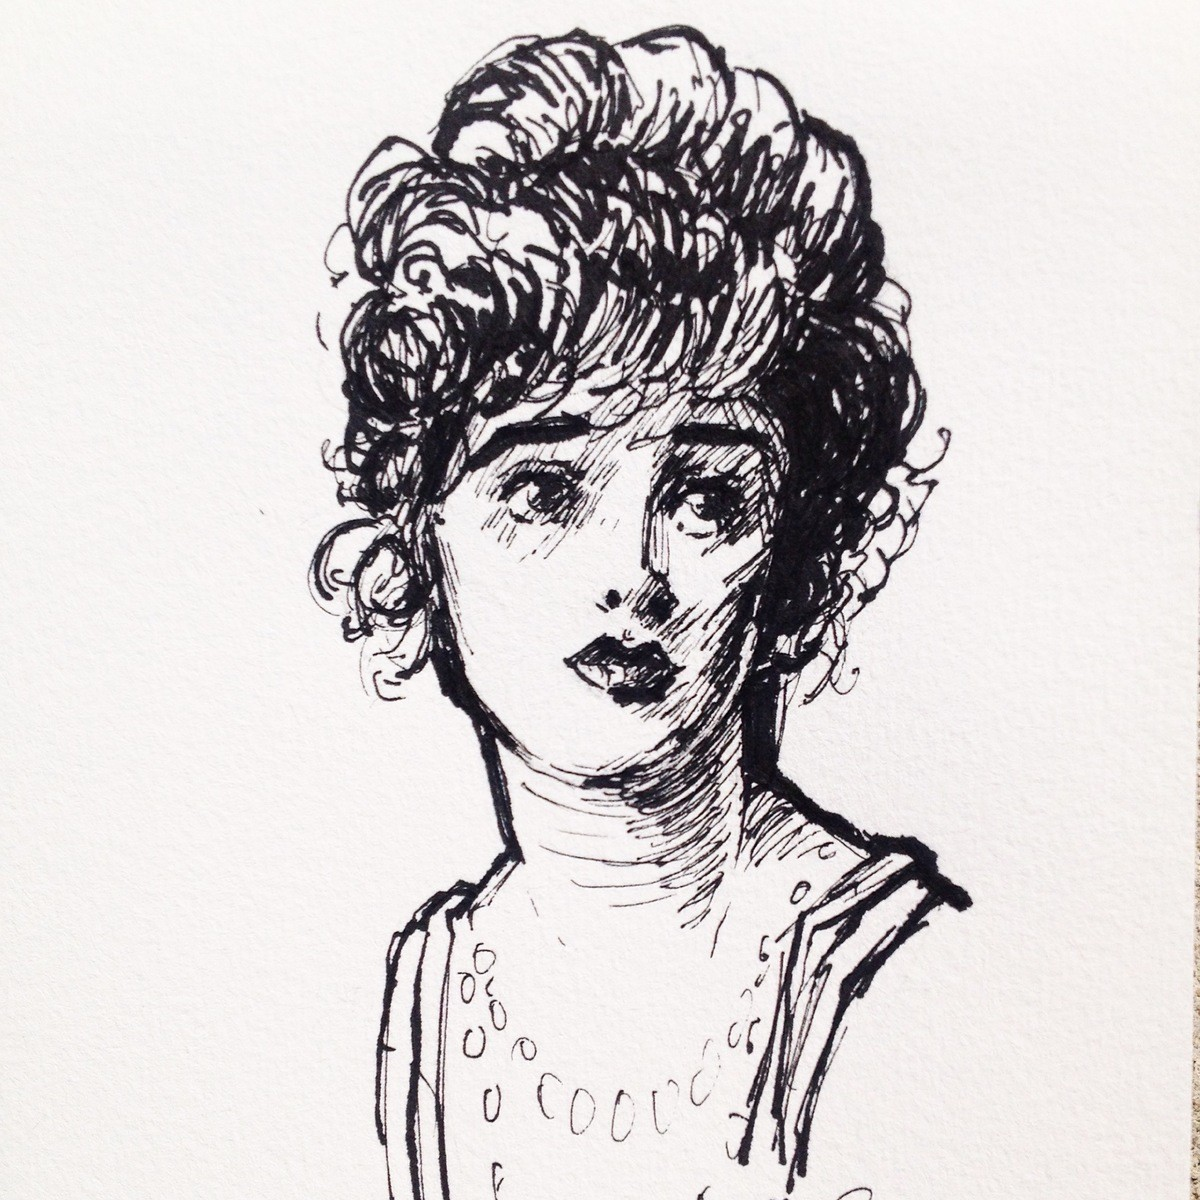 Gibson Girl Study. Another Gibson study. join list: WatercolorAndOrInk (43 subs)Mention History Lmk in the comments if you have and critiques on this piece. &lt